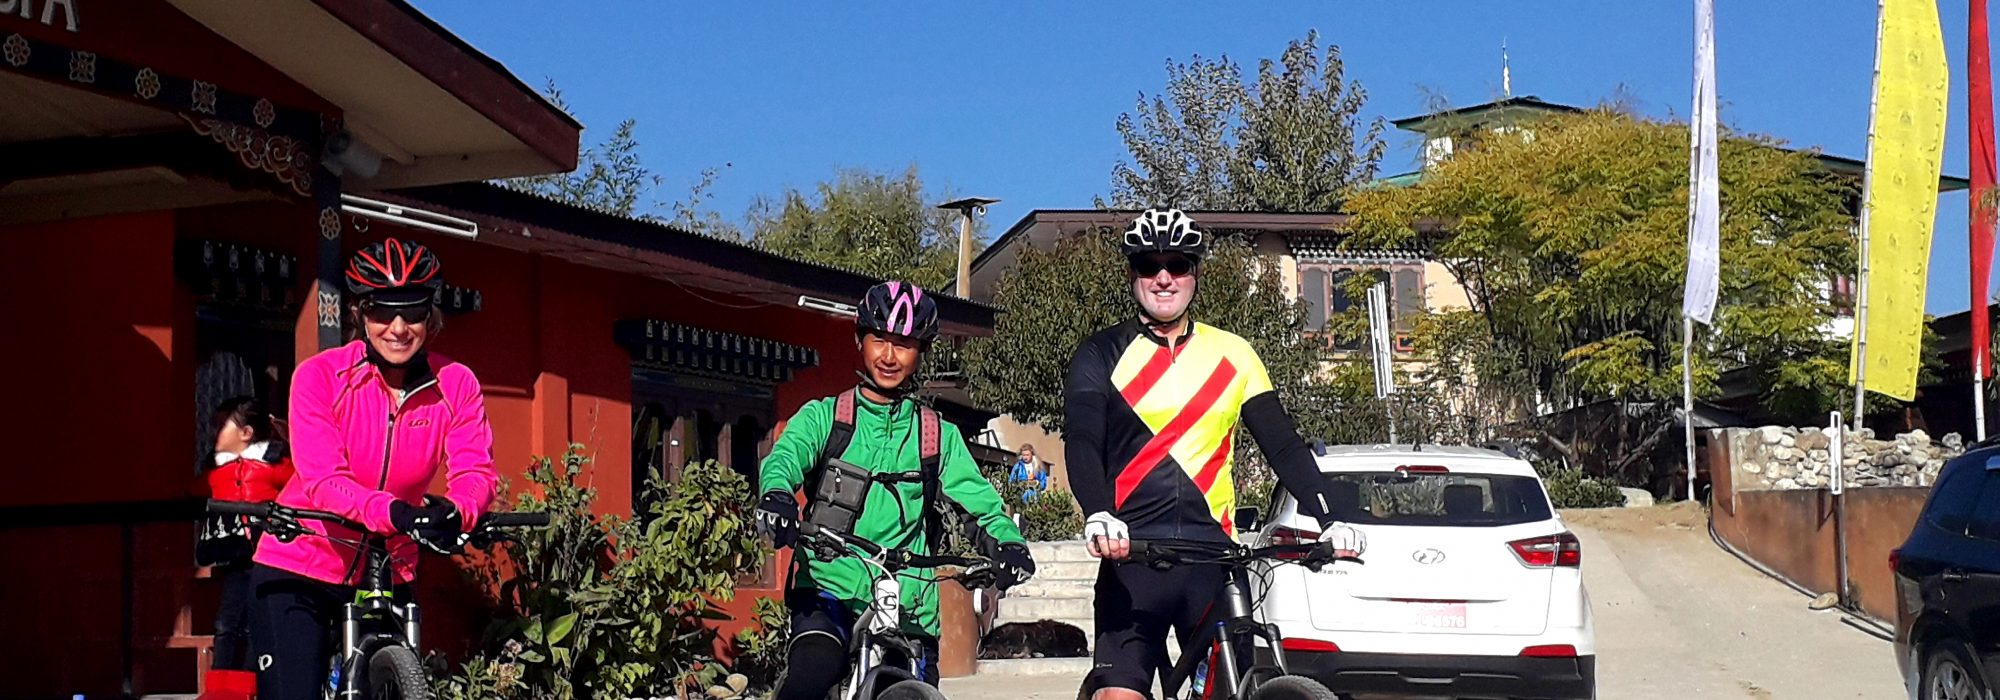 Cycling Tour in Bhutan 7 Days & 6 Nights